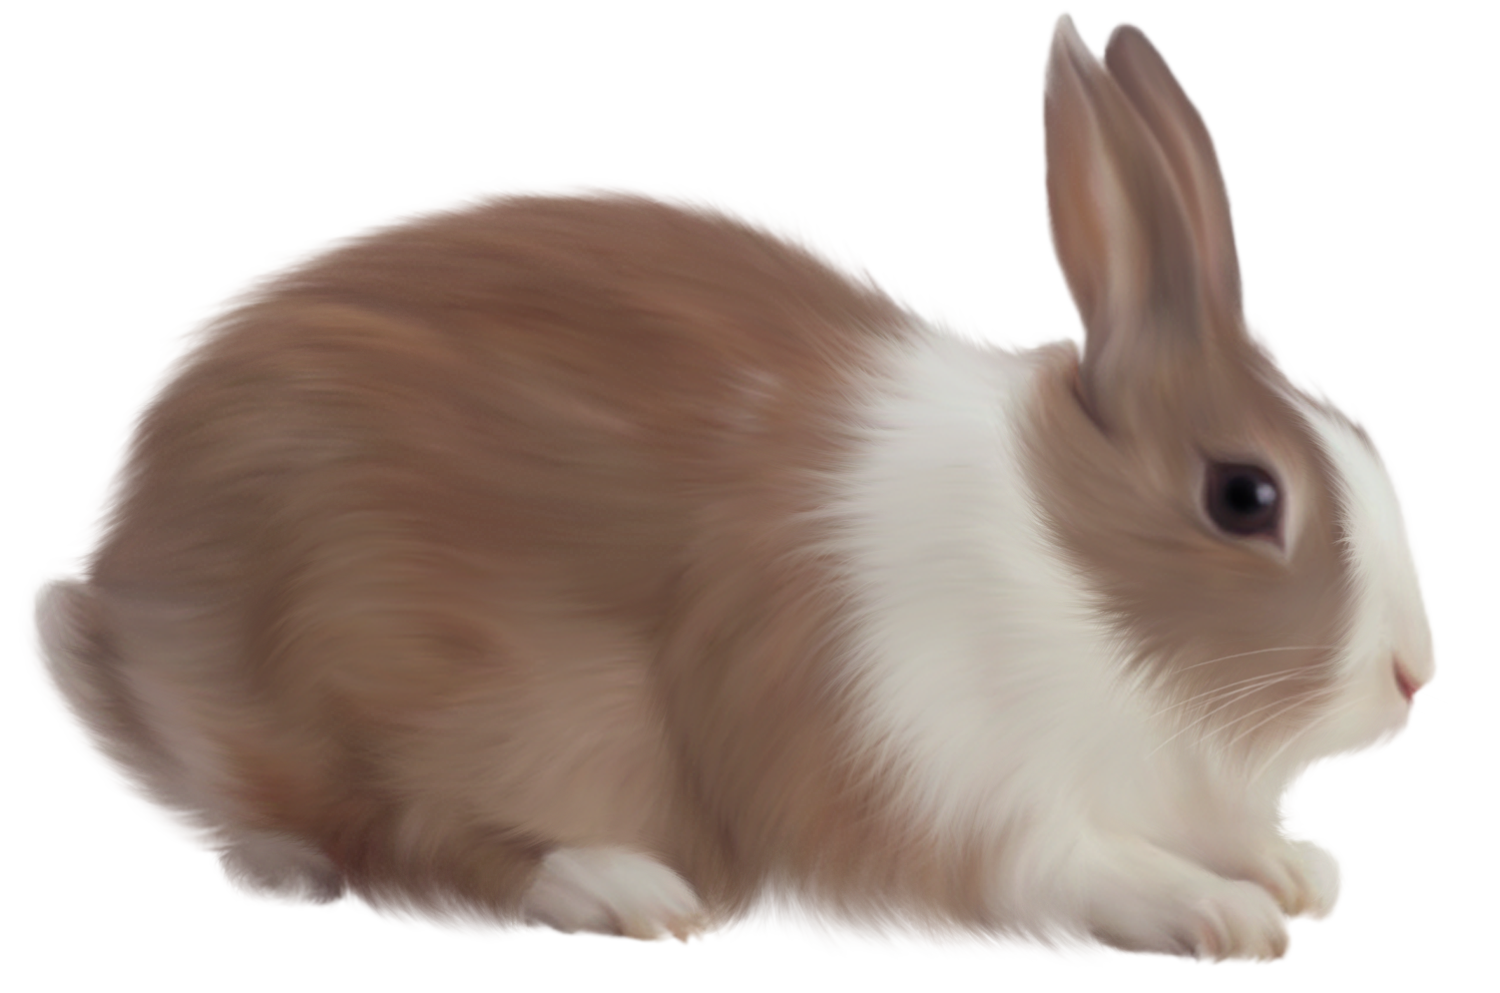 Rabbit png images. Free pictures download image